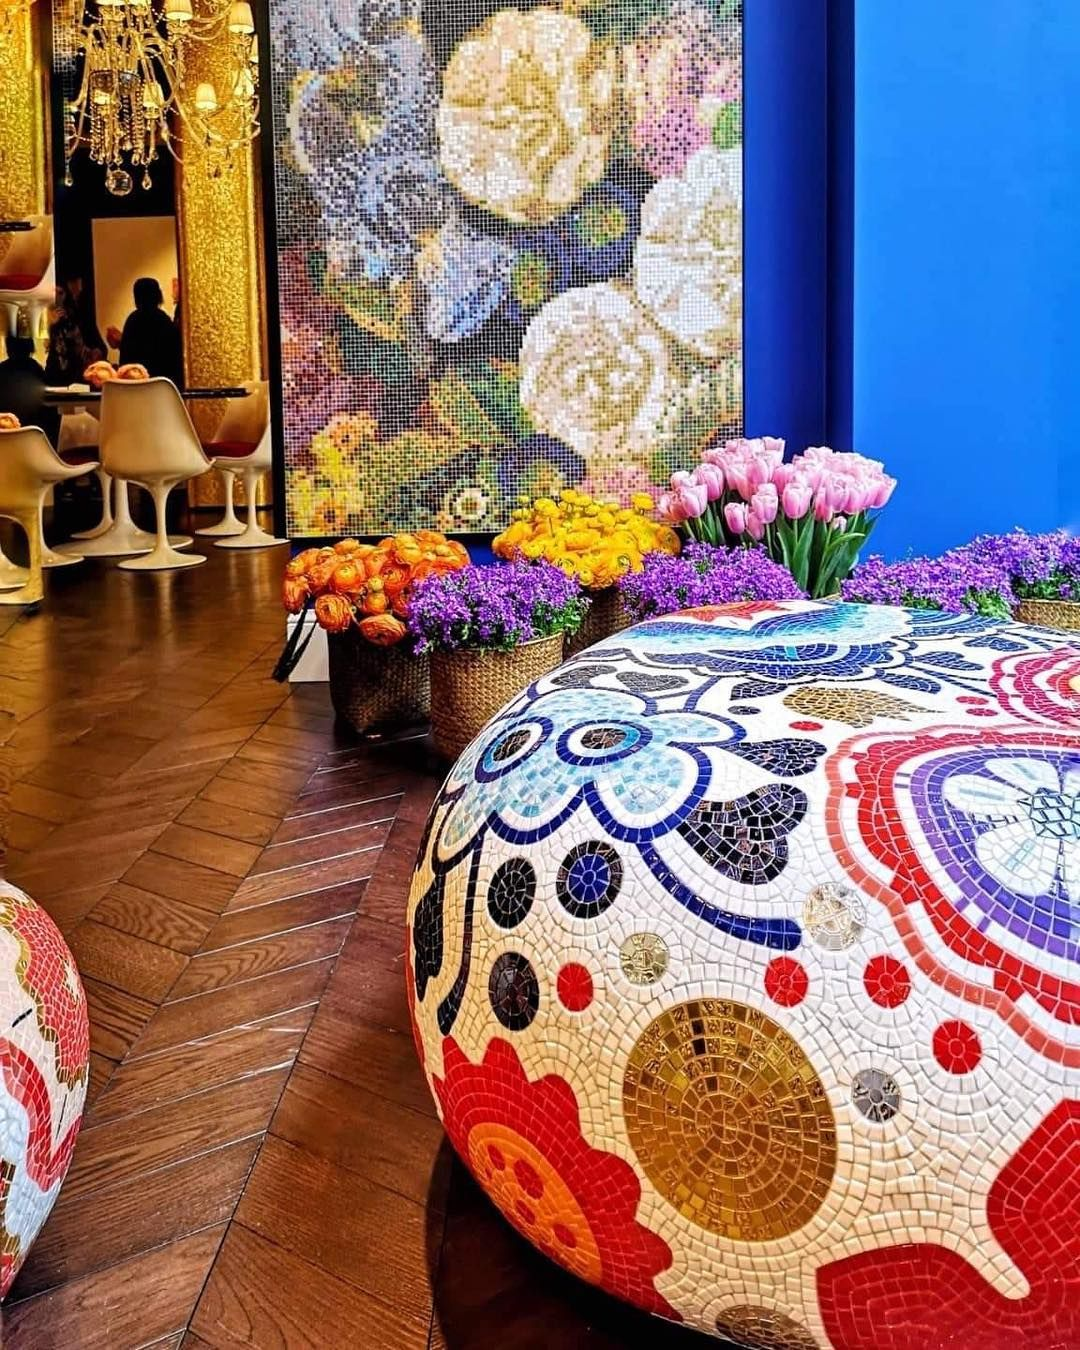 [New] The 10 Best Home Decor (with Pictures)   Bisazza Marcel Wanders